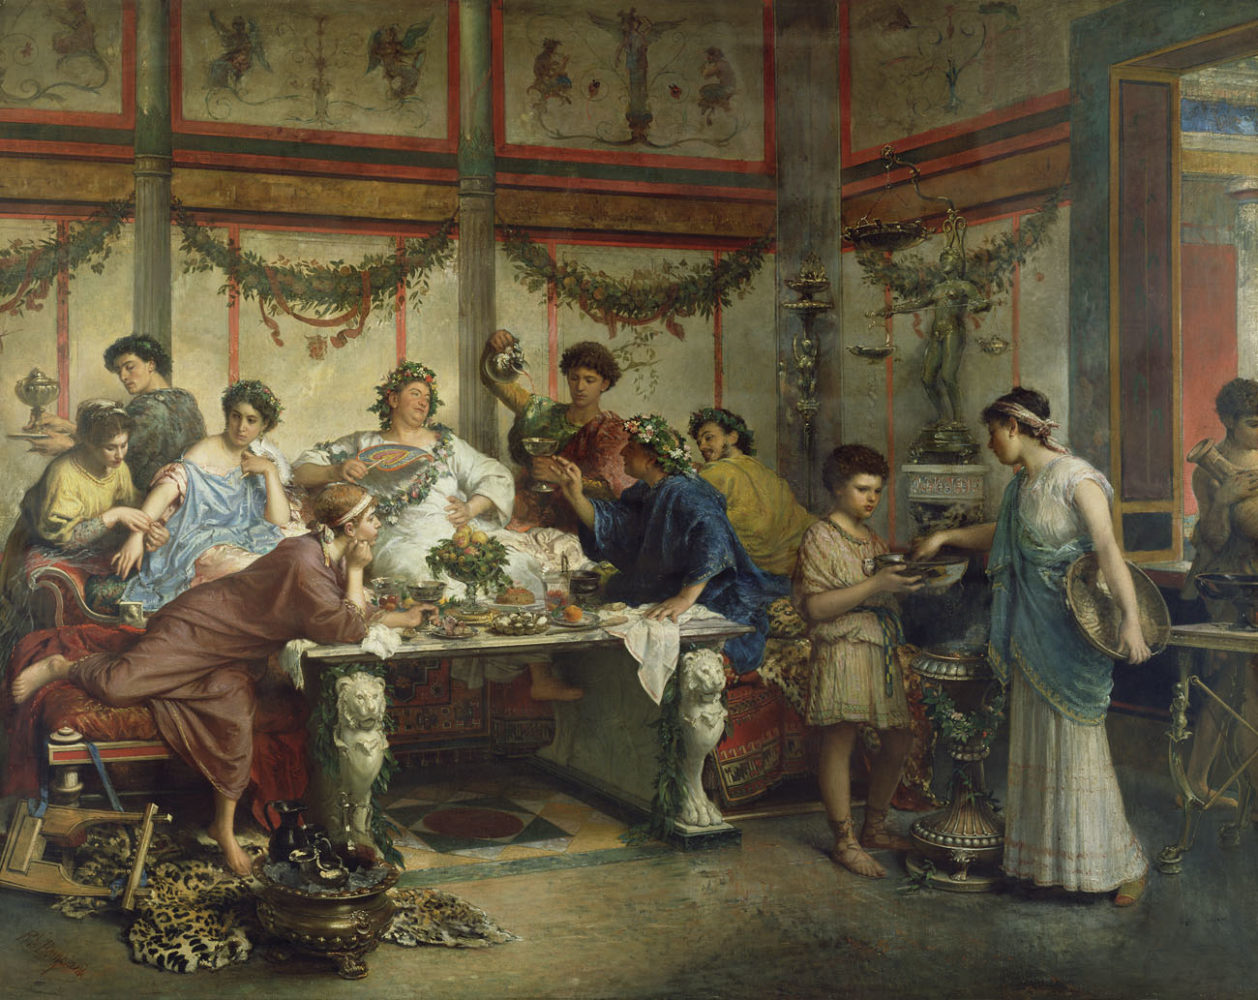 Reclining and Dining (and Drinking) in Ancient Rome